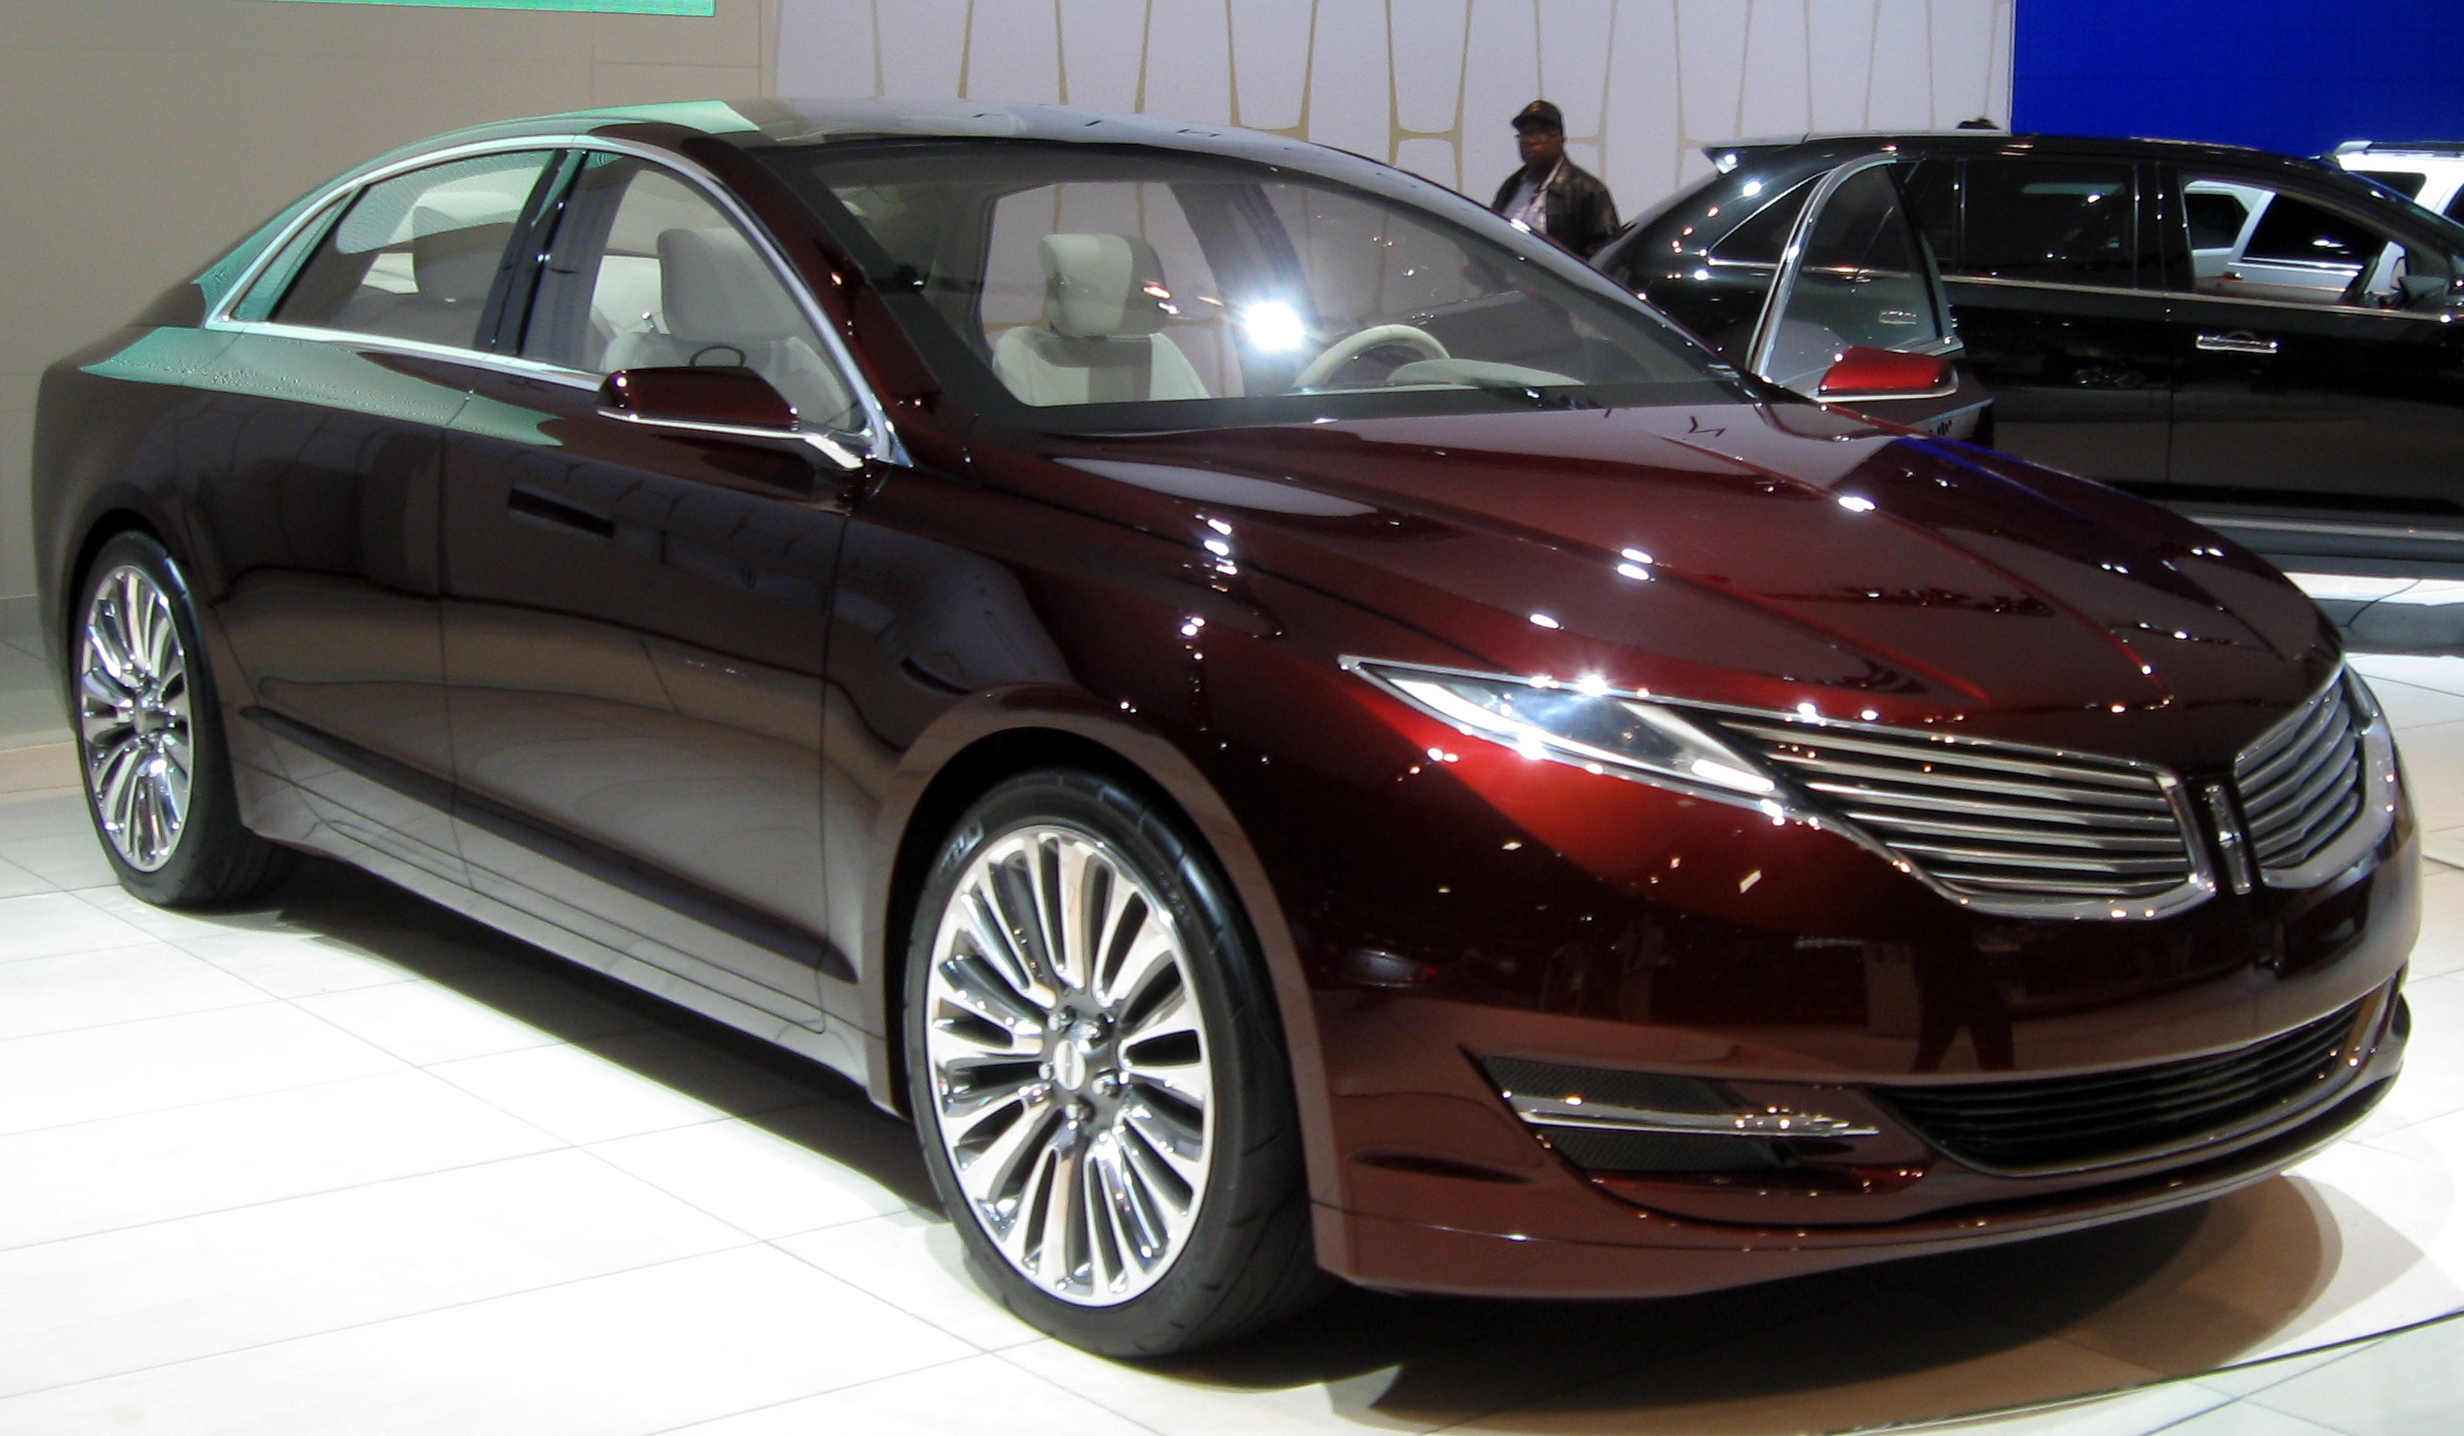 2013 Lincoln MKZ Concept 2012 DC